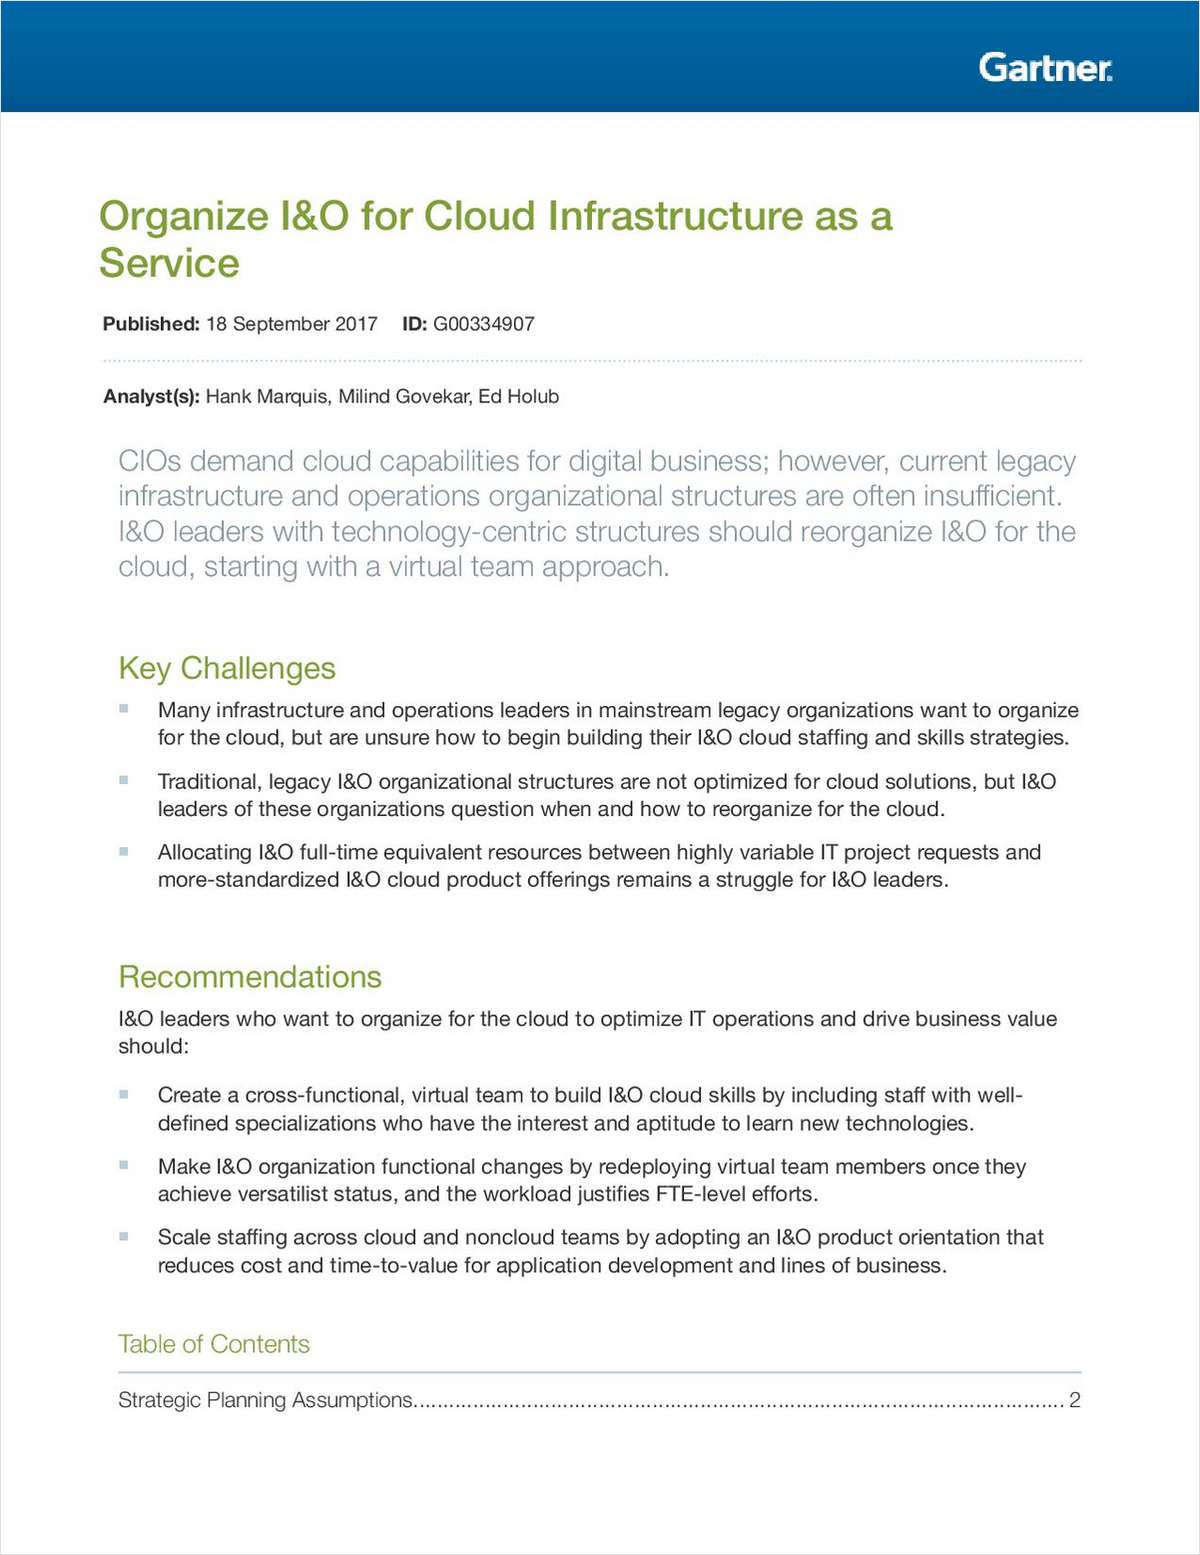 Organize I&O for Cloud Infrastructure as a Service